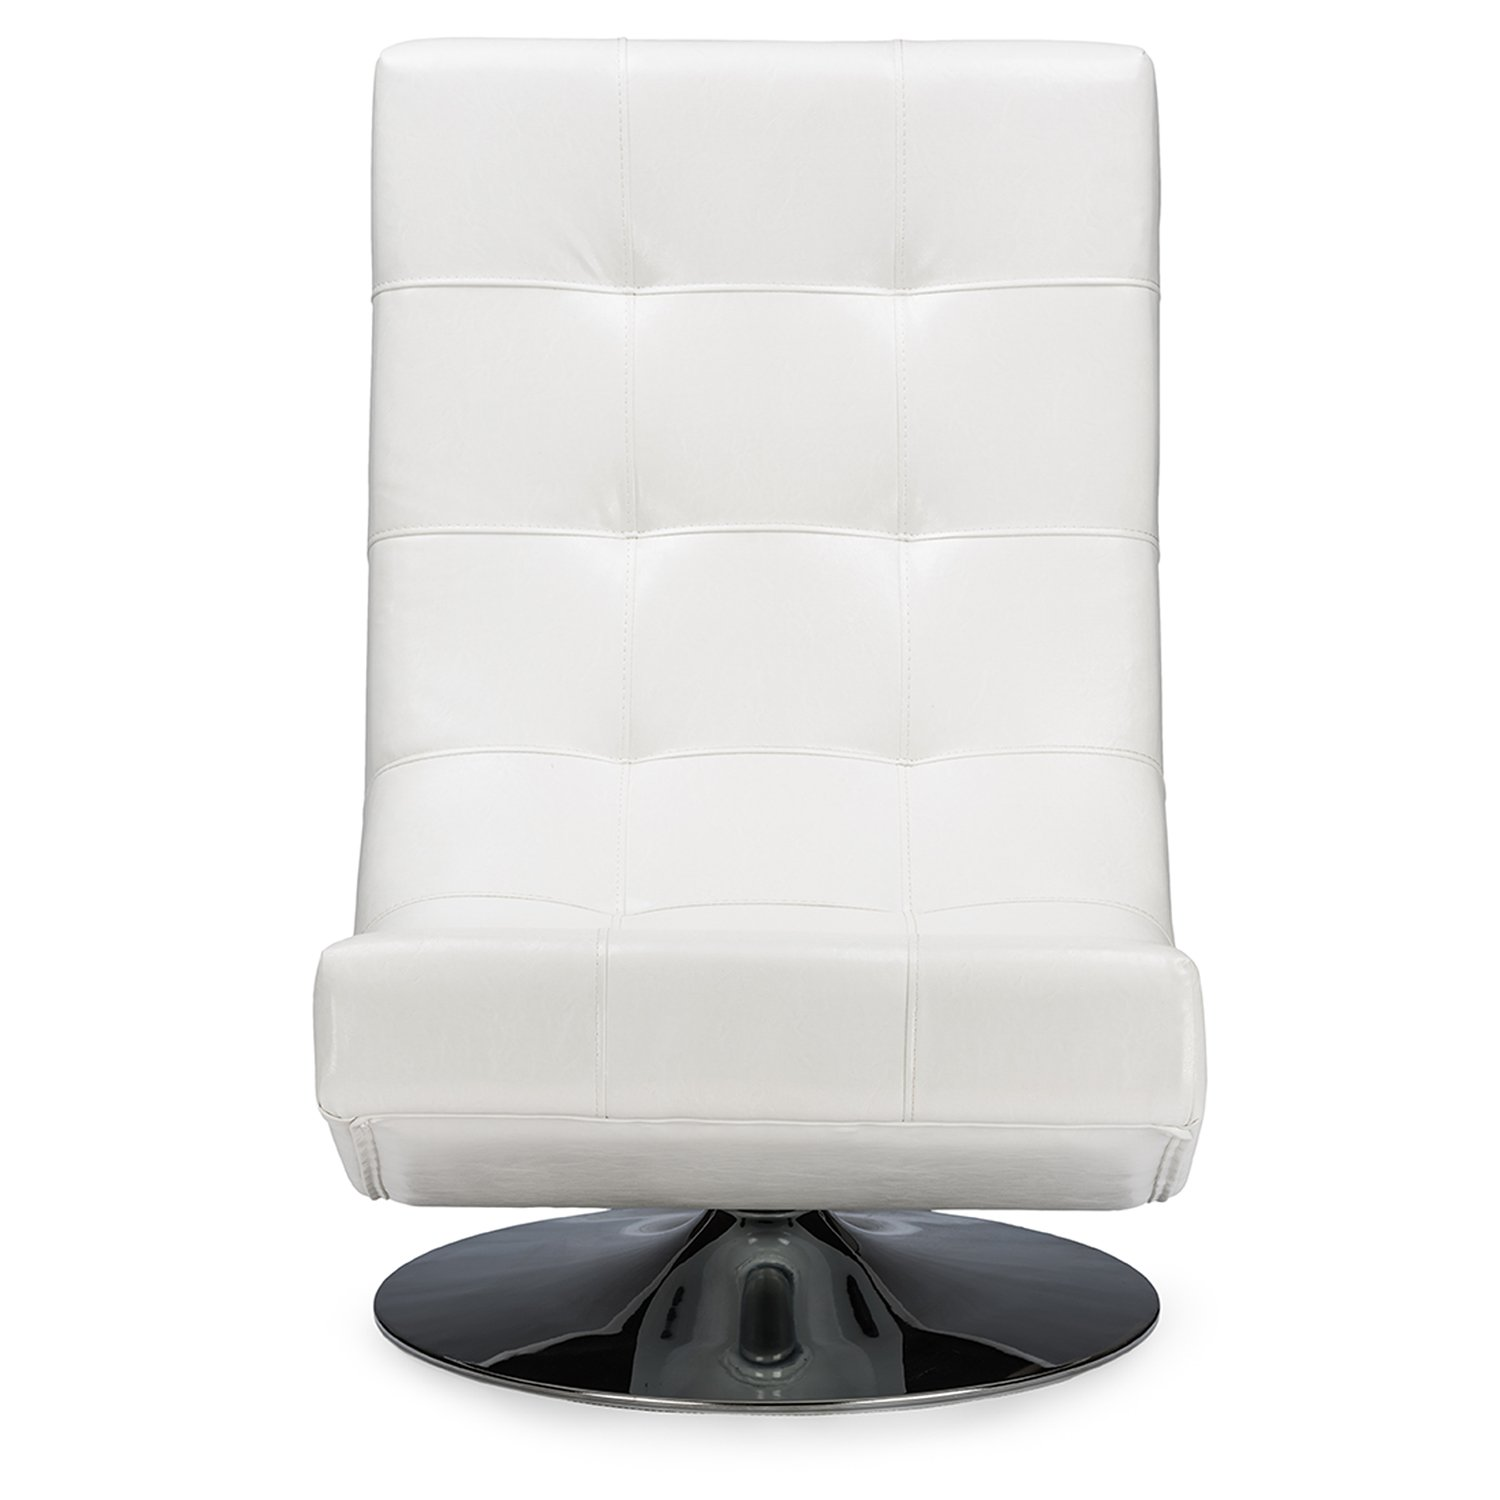 Delightful Amazon.com   Wholesale Interiors Baxton Studio Elsa Faux Leather Upholstered  Swivel Chair With Metal Base, Large, White   Chairs